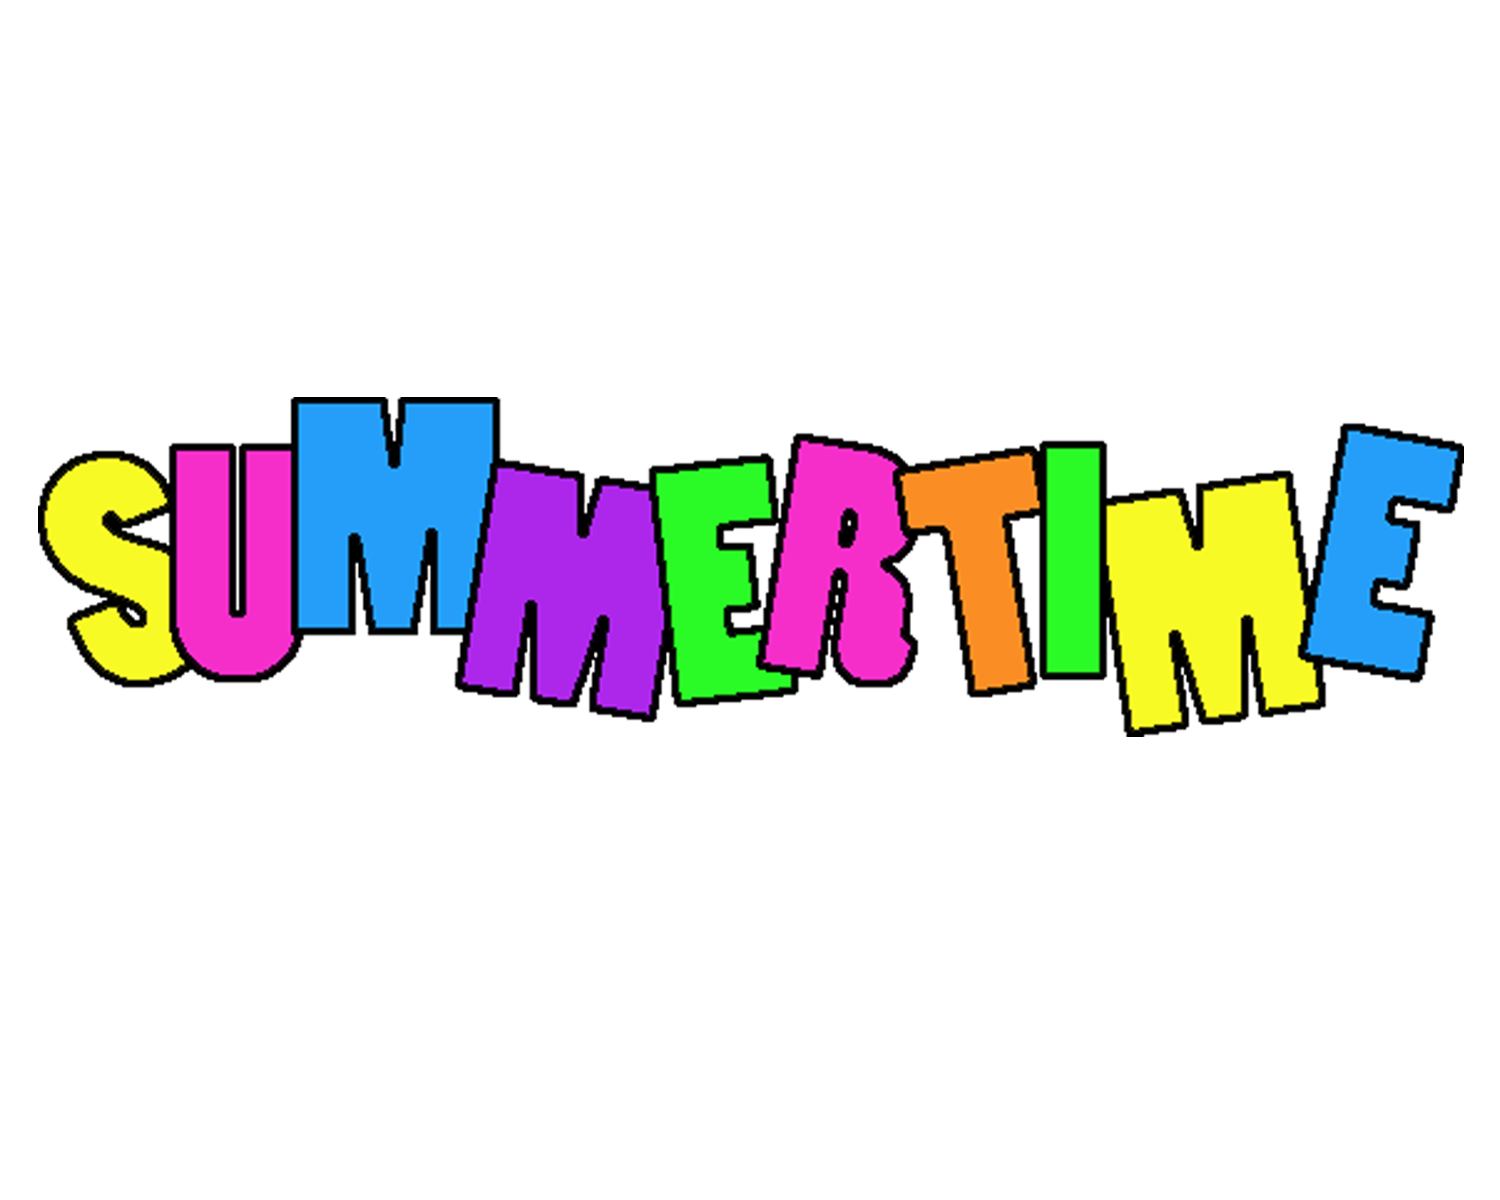 Clip Art Summertime Clipart summertime clipart panda free images